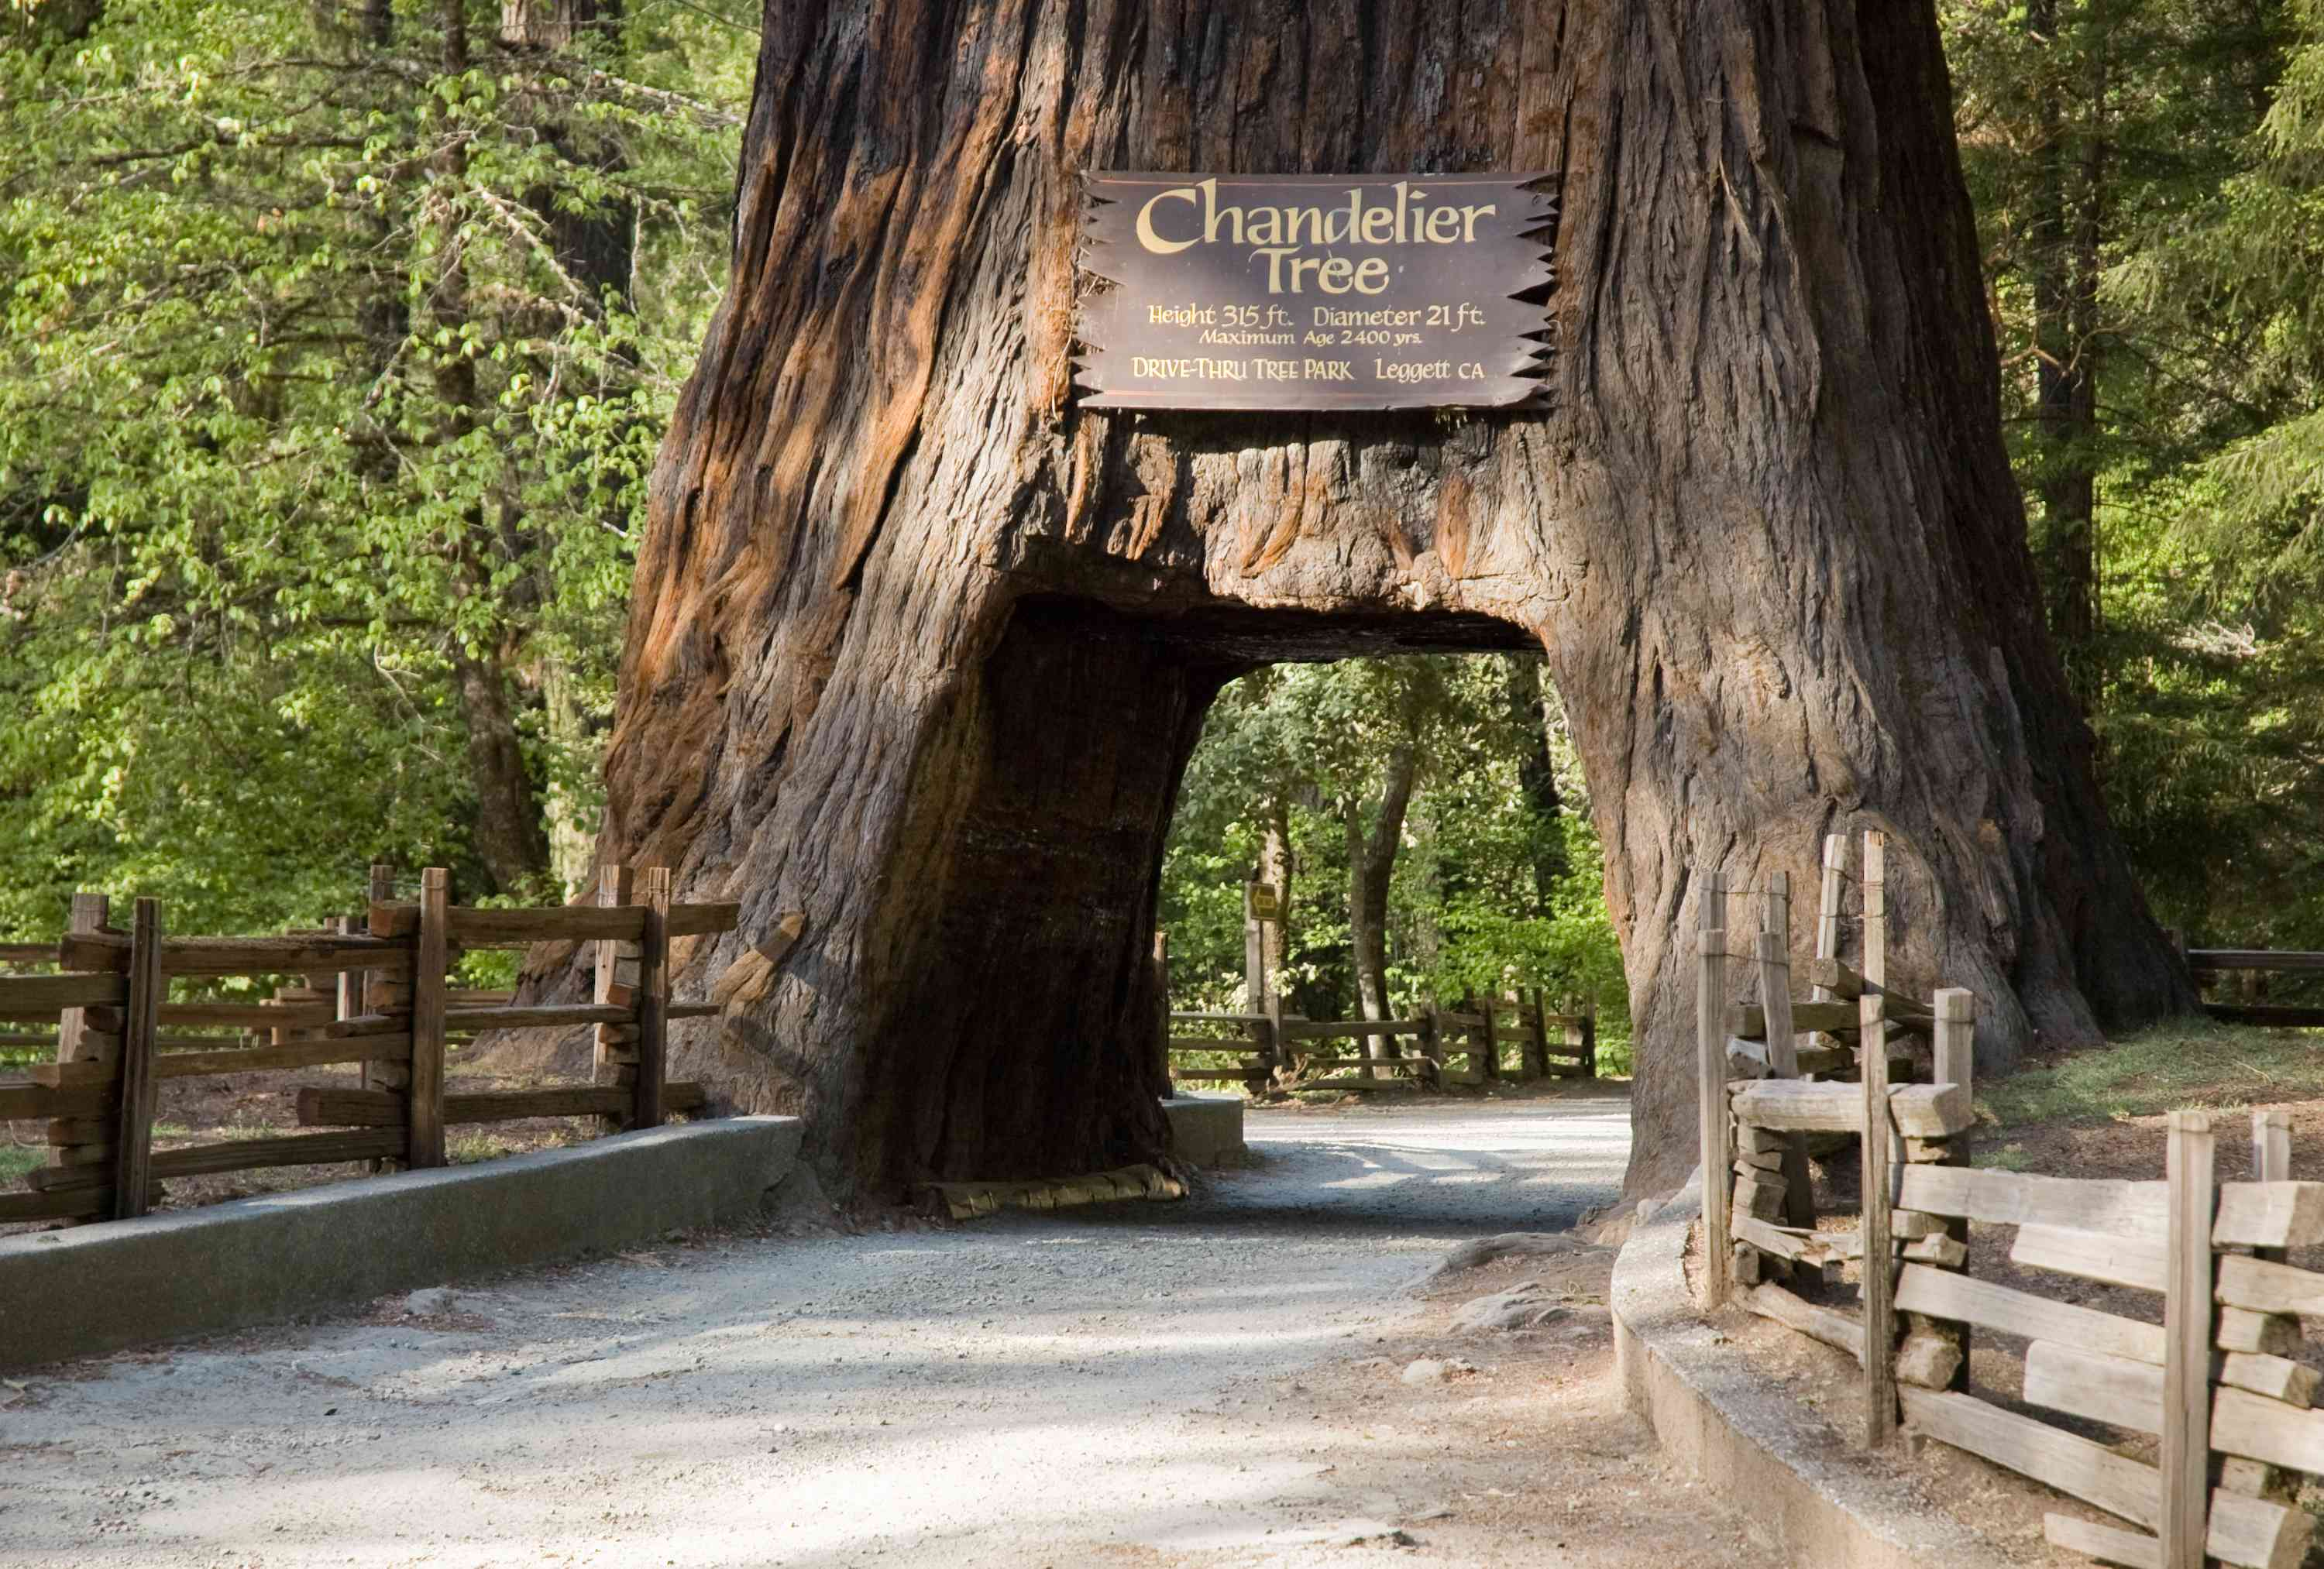 Road traveling through an arch cut into the Chandelier Tree